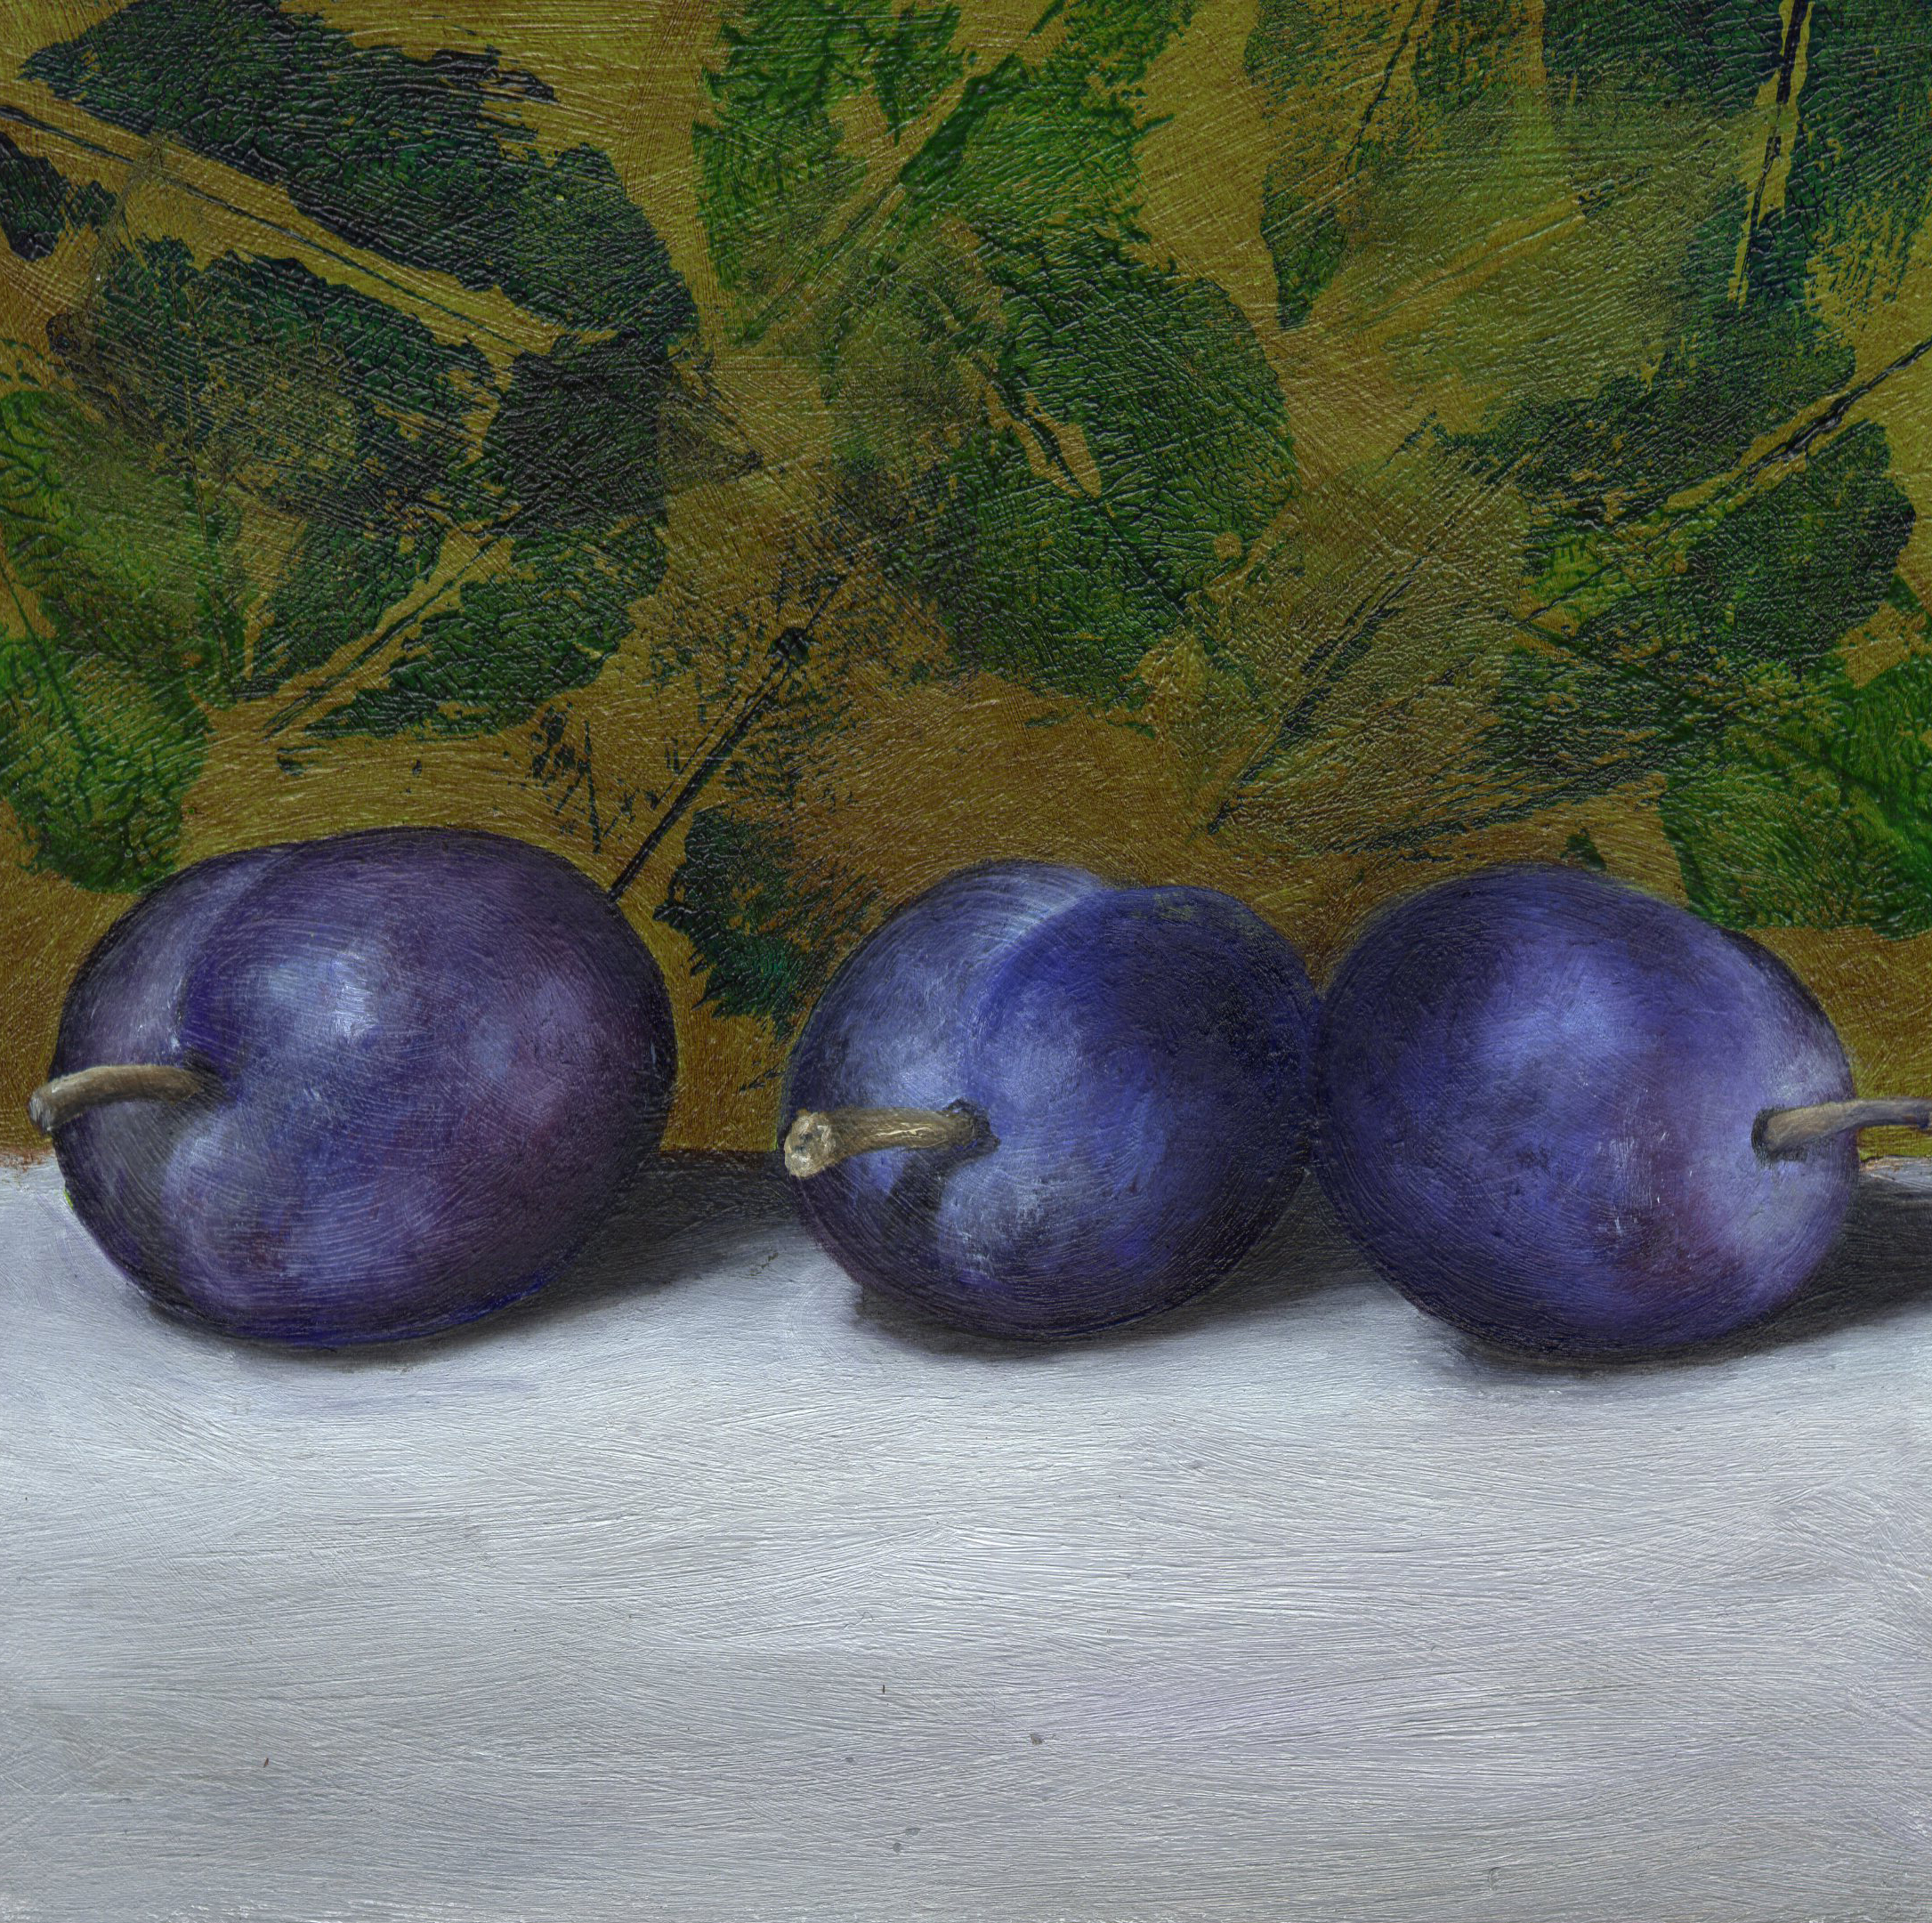 3 Plums, Alyson's Orchard, NH